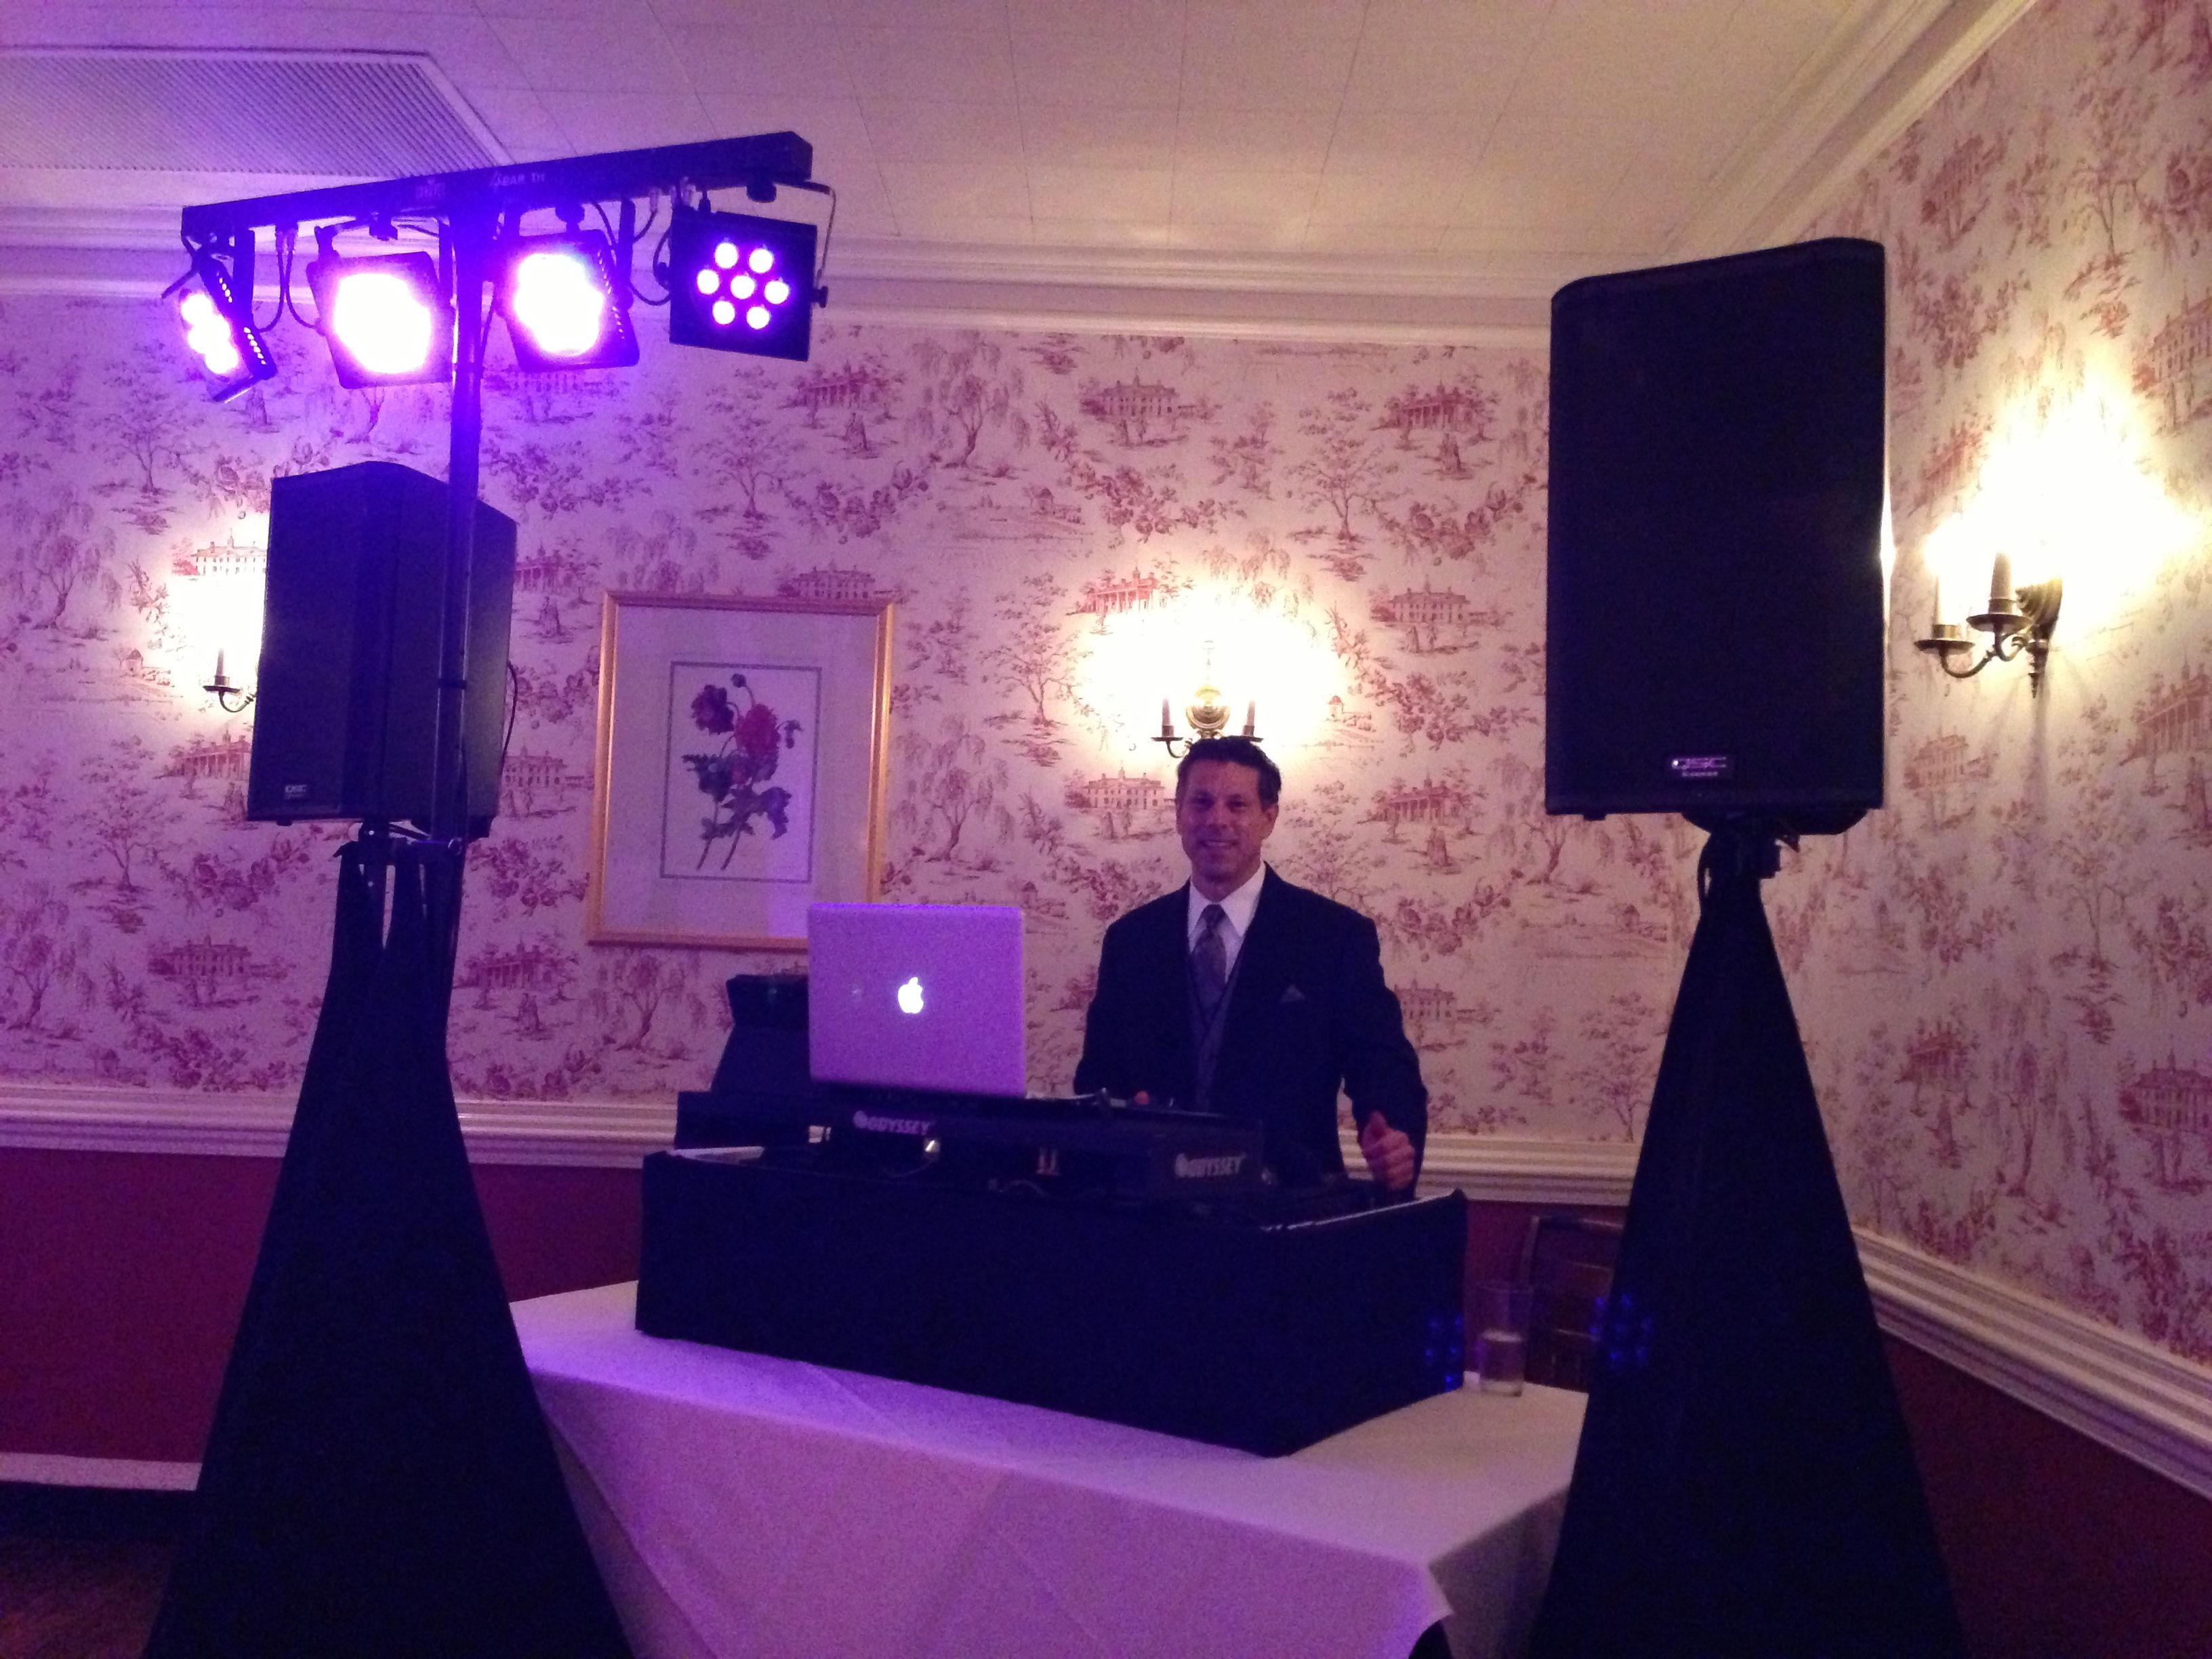 Good times this weekend DJing and MCing a wedding reception at the Mount Vernon Inn Restaurant, Alexandria, VA.